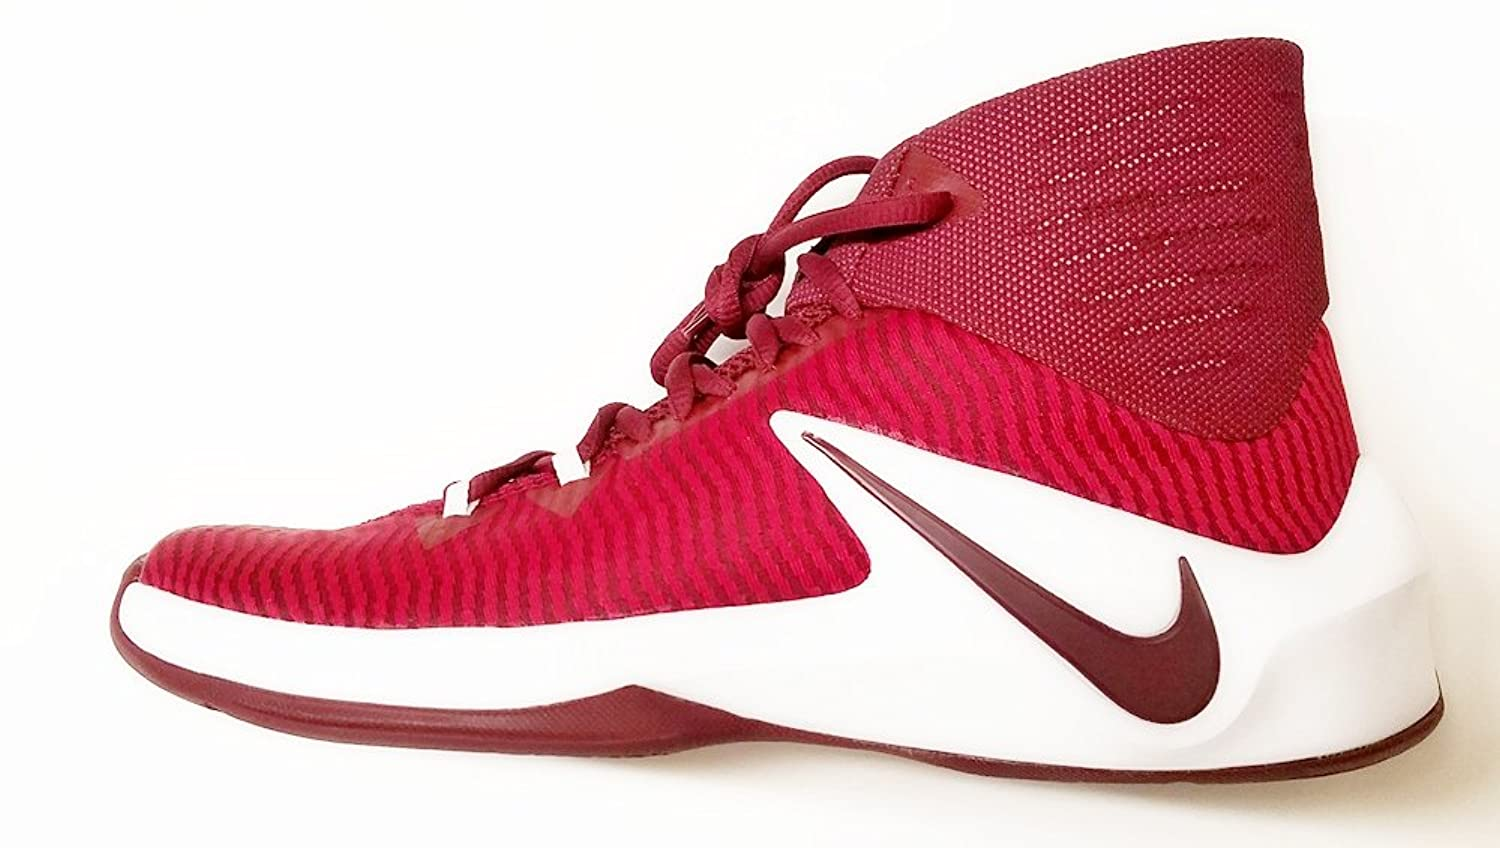 half off 81624 dbe51 Nike Men s Zoom Clear Out TB Basketball Shoes Maroon 844372 667 Size 10.5  lovely